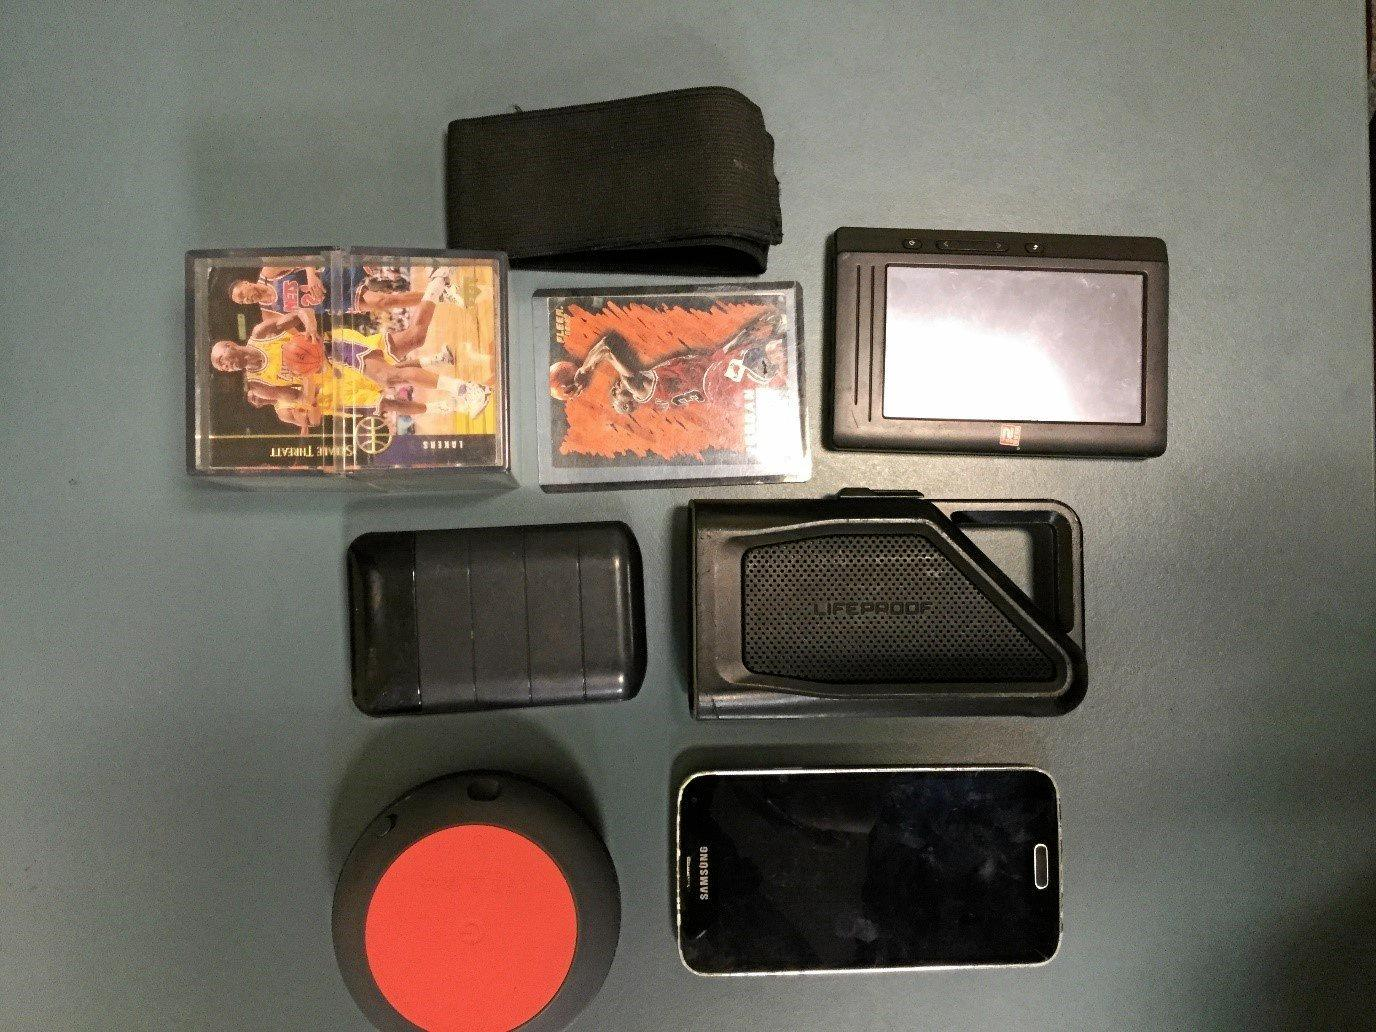 Some of the items seized by police including basketball cars and a mobile phone.